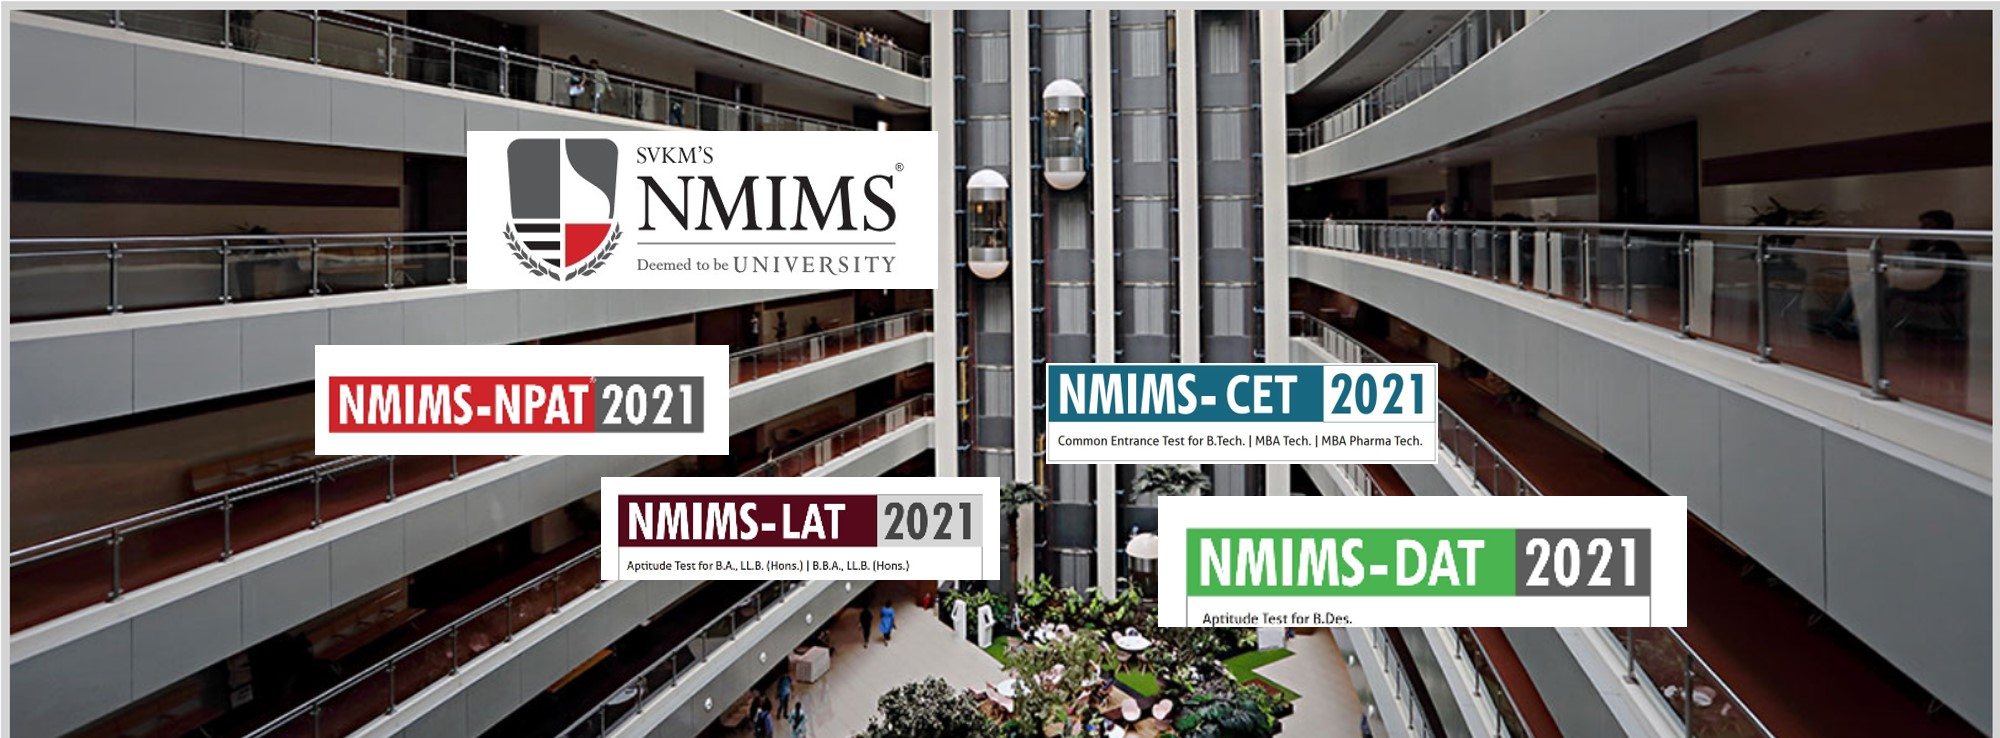 NMIMS-2021